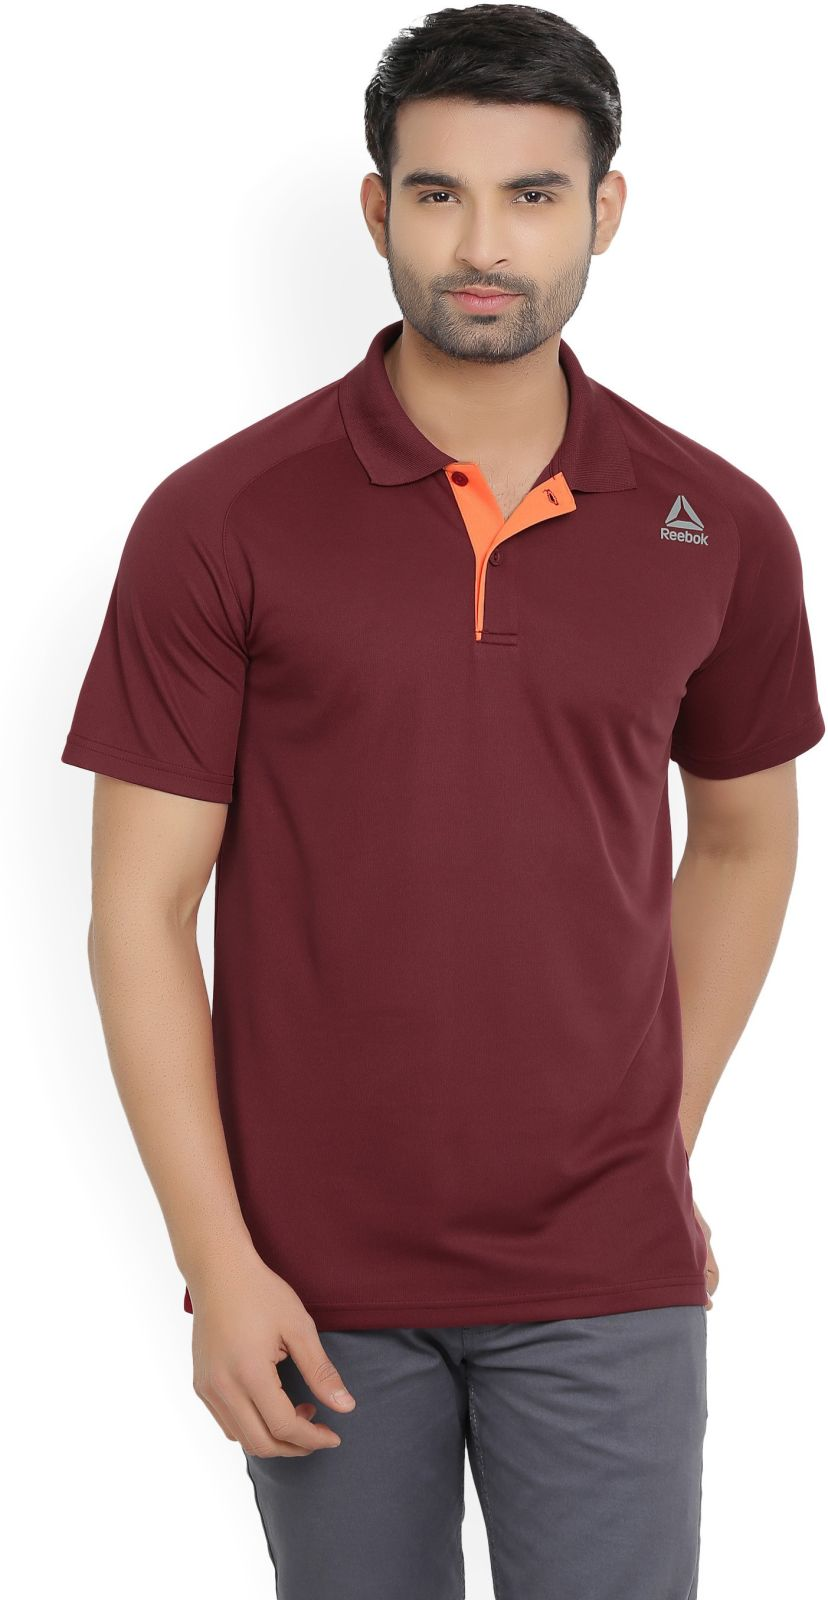 REEBOK Solid Mens Polo Neck Maroon T-Shirt